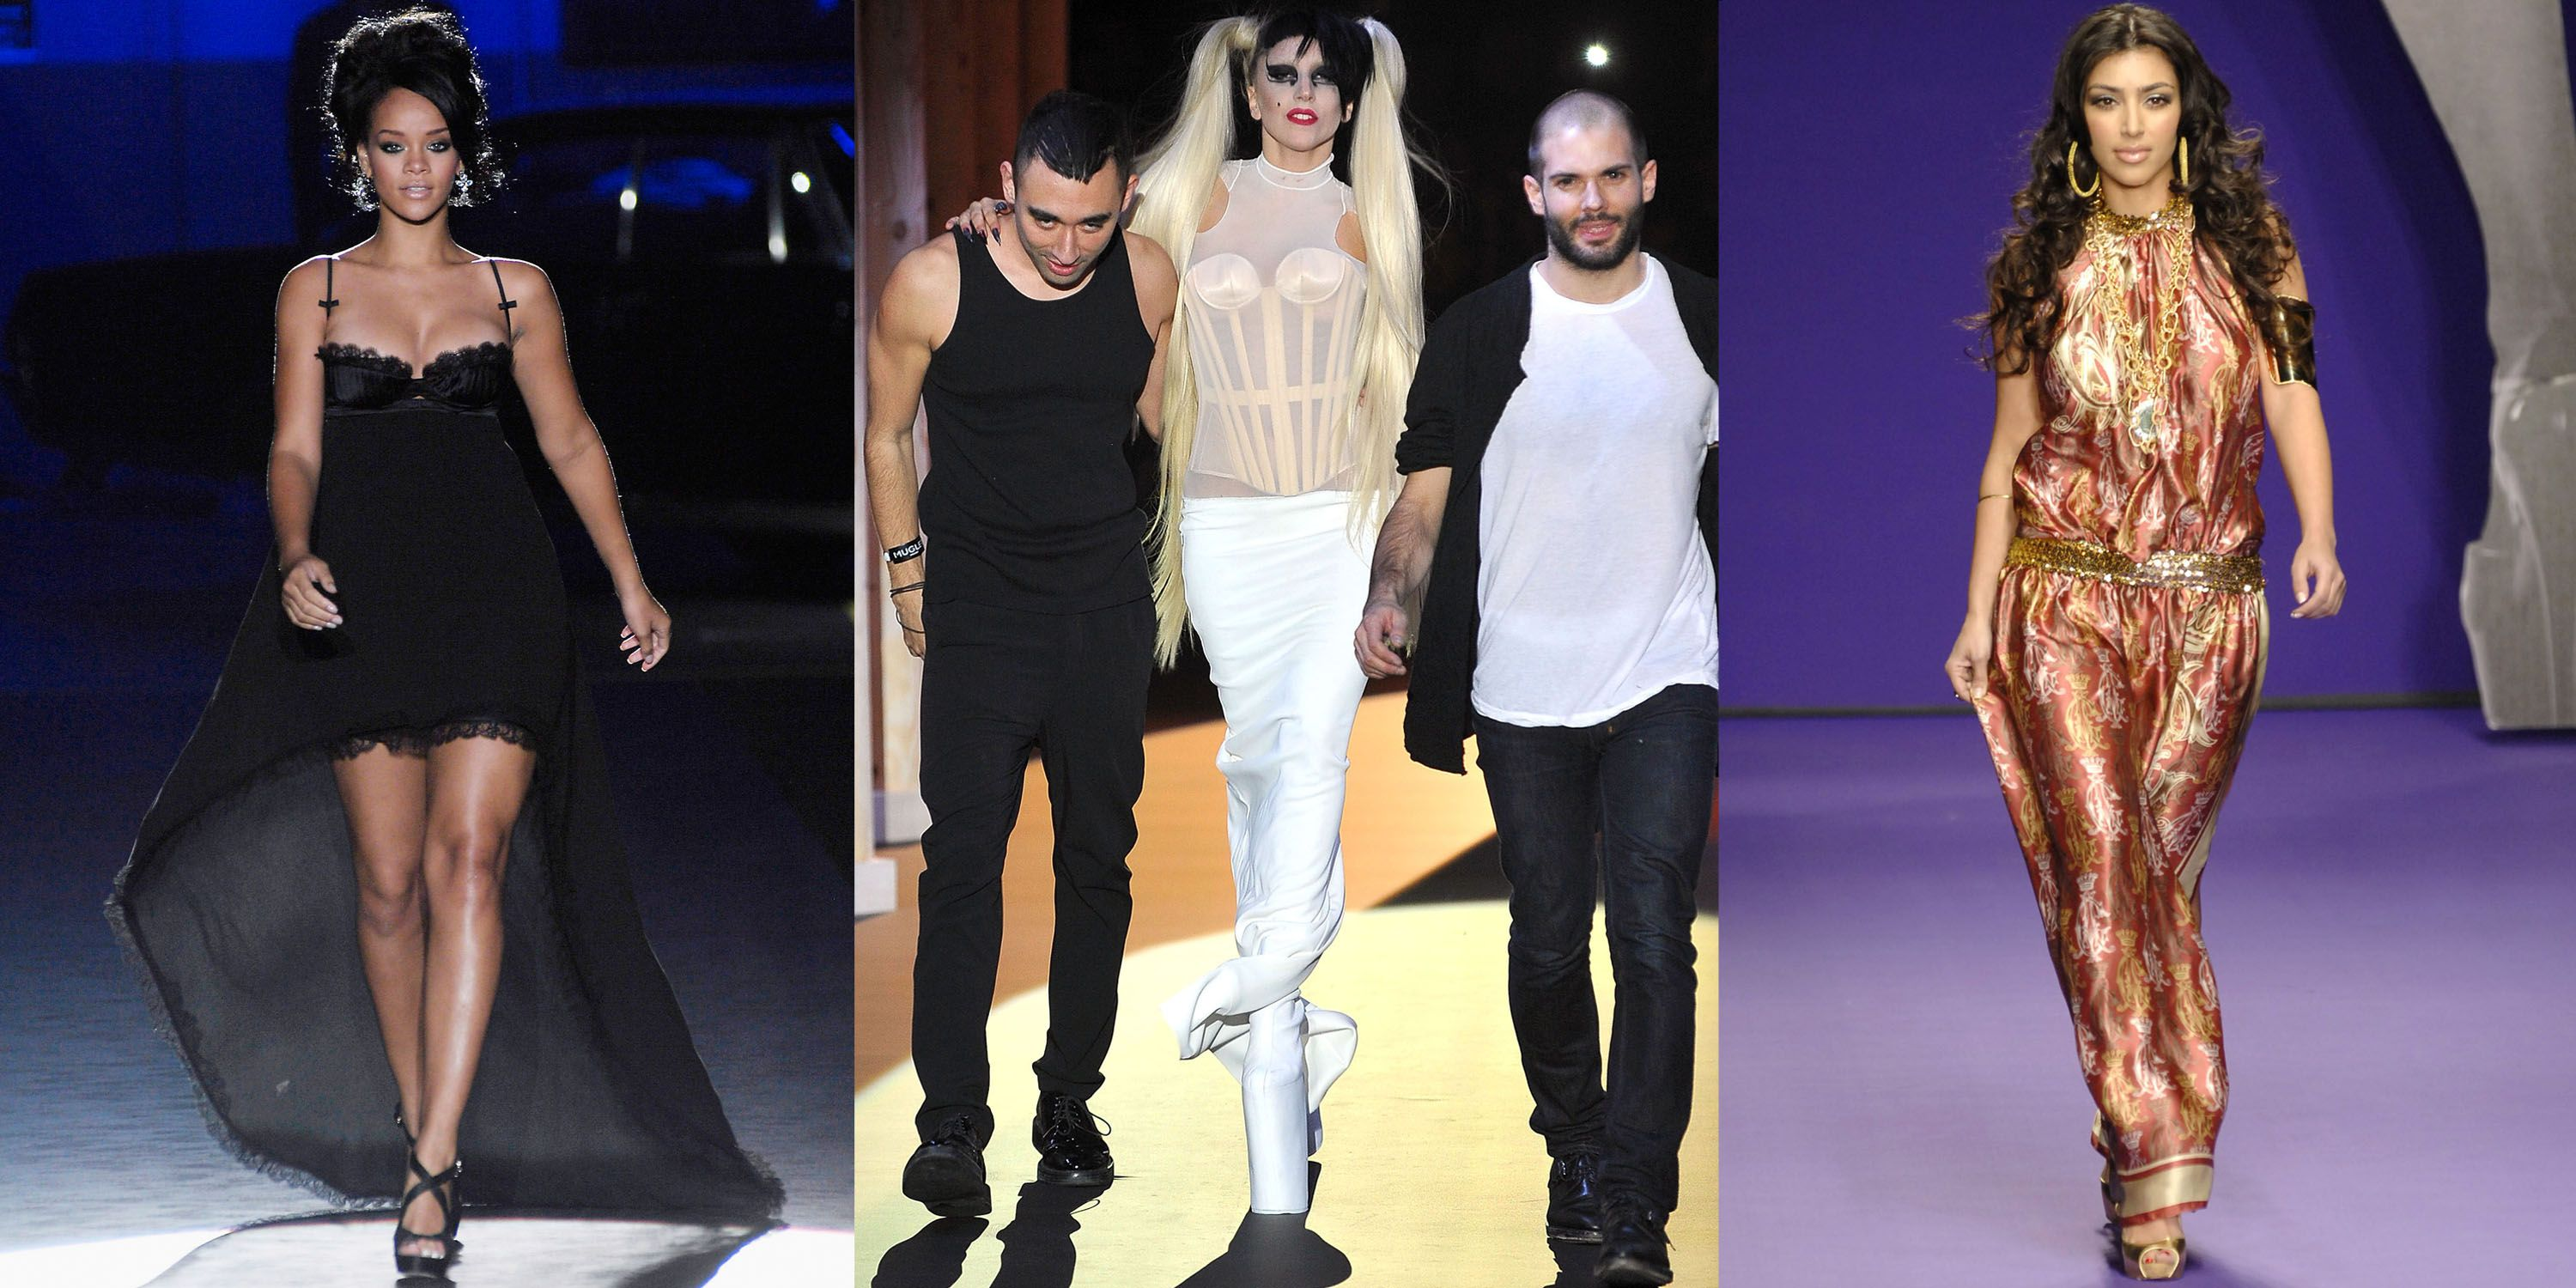 Watch 15 Celebrities Who Have Walked The Runway video